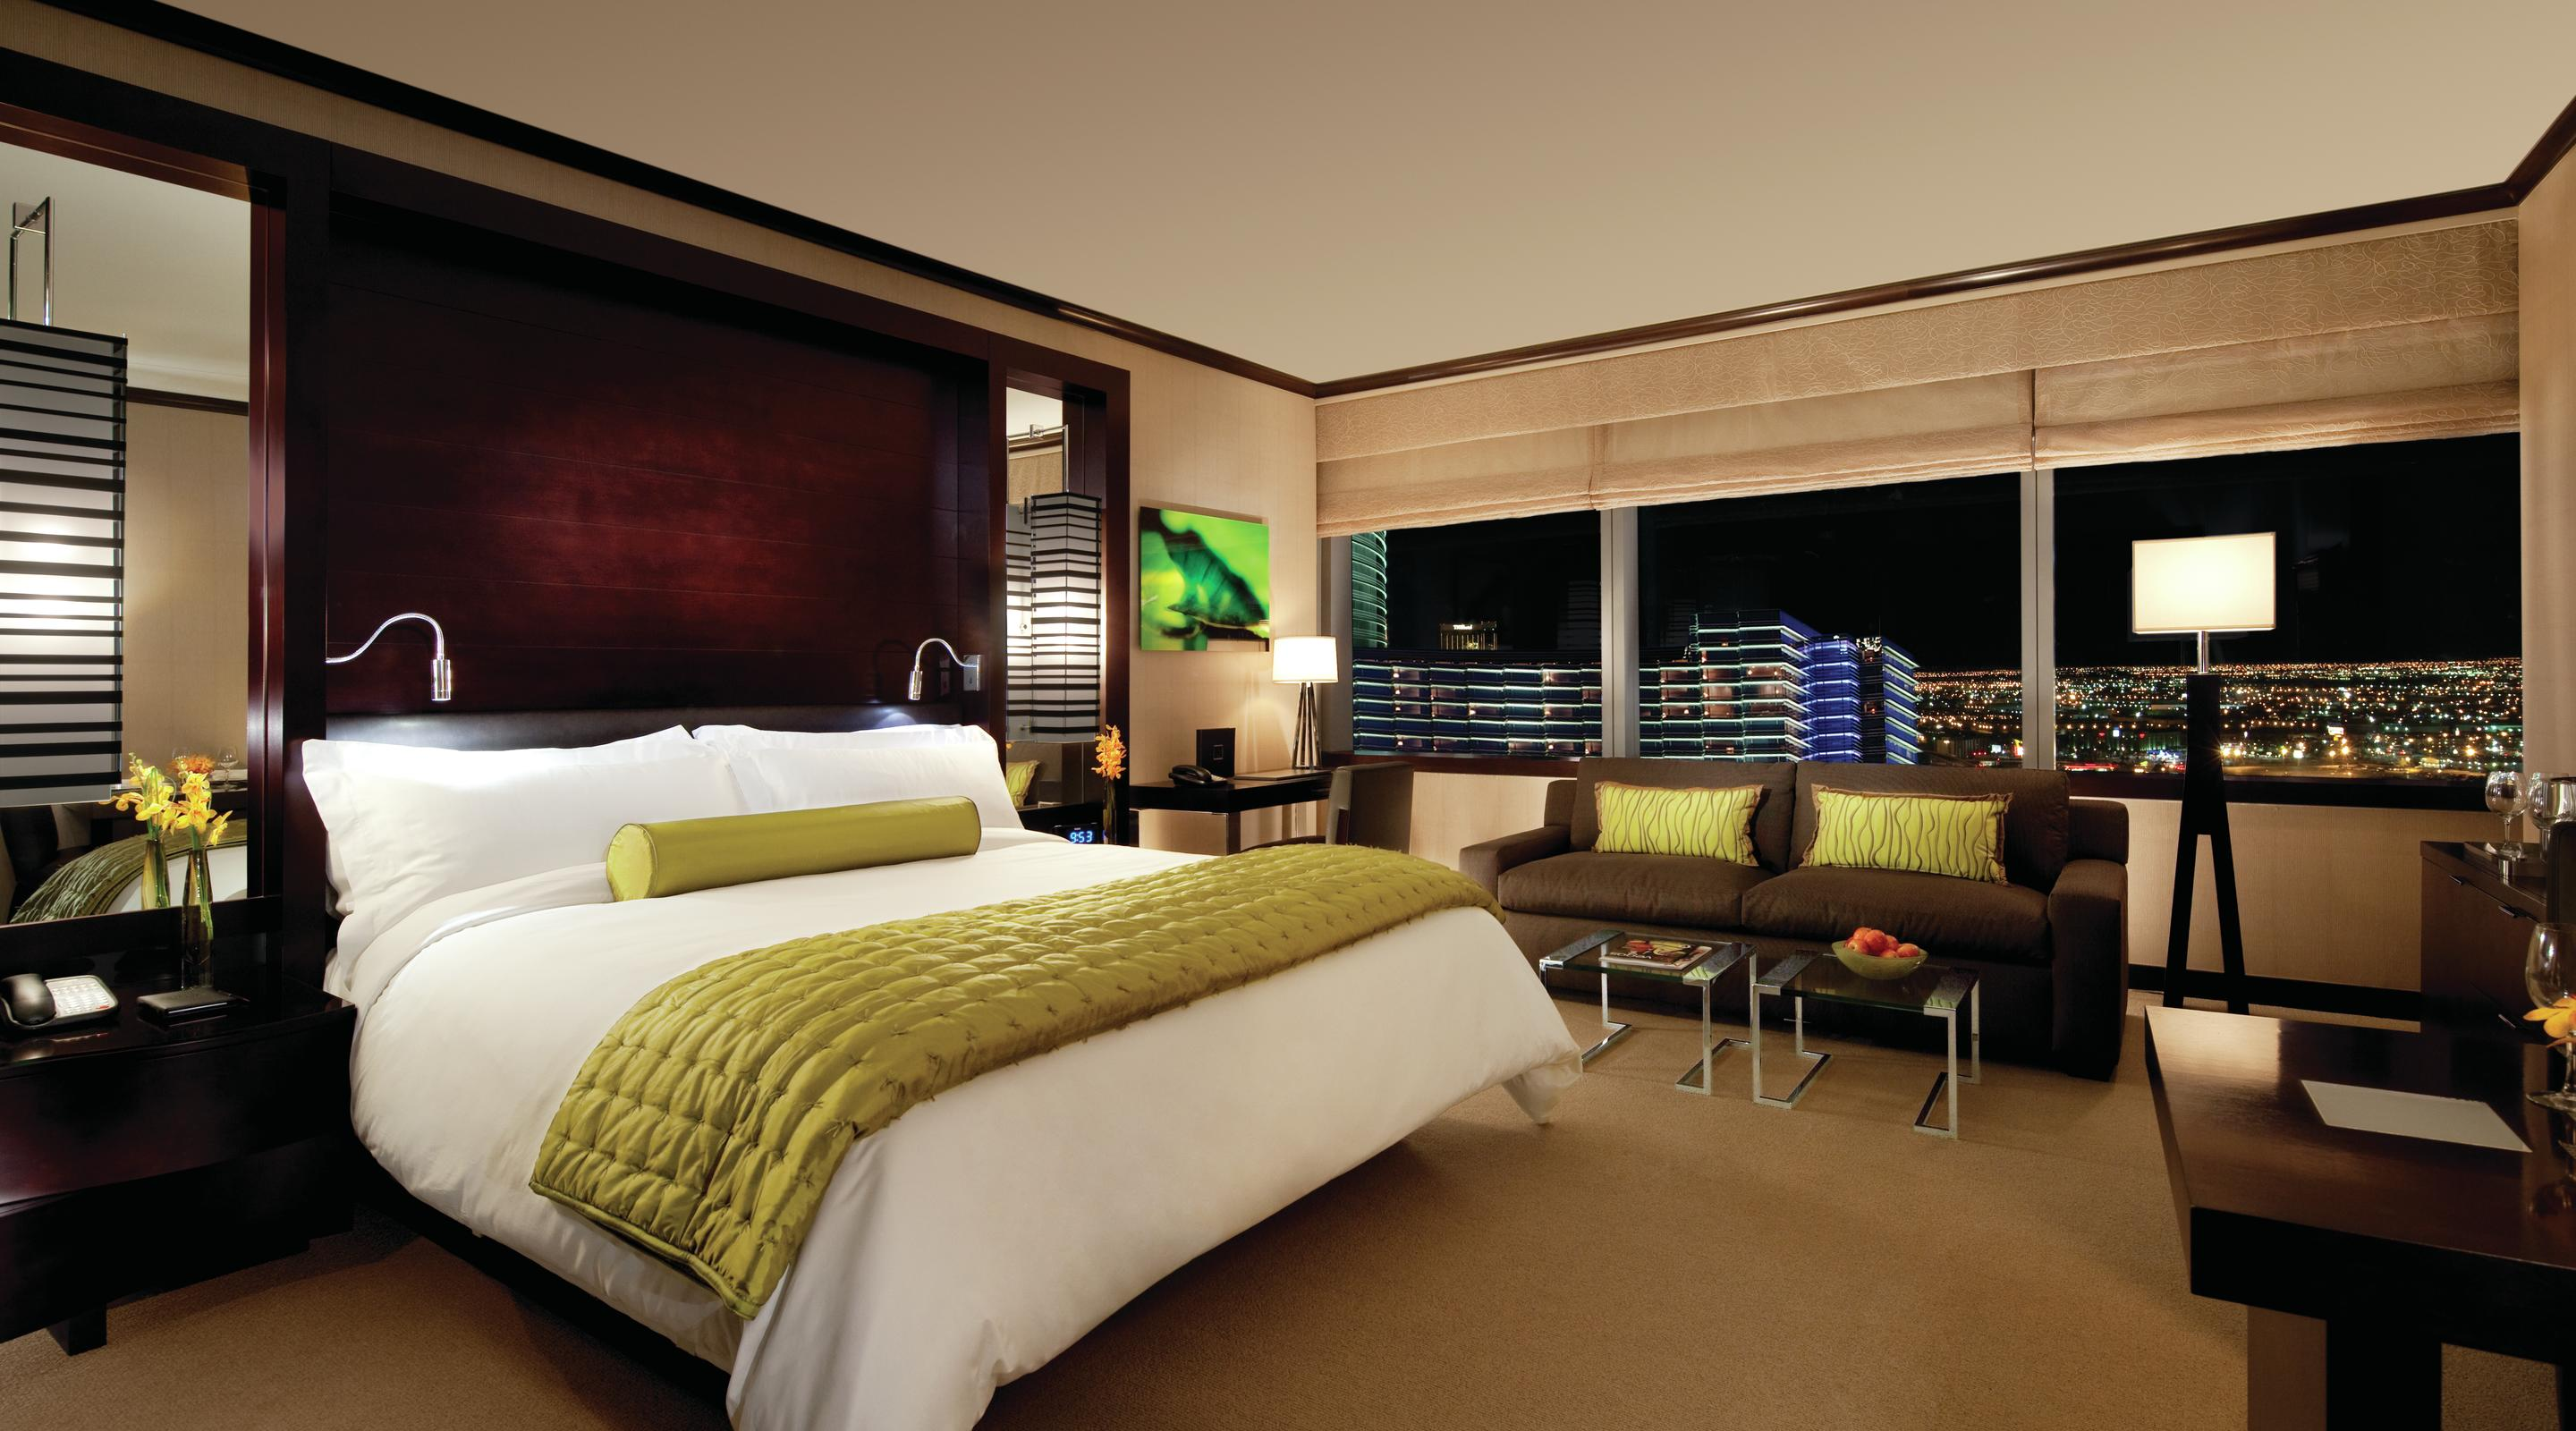 Buy Hotel Bedding Vdara At Home Vdara Hotel Spa